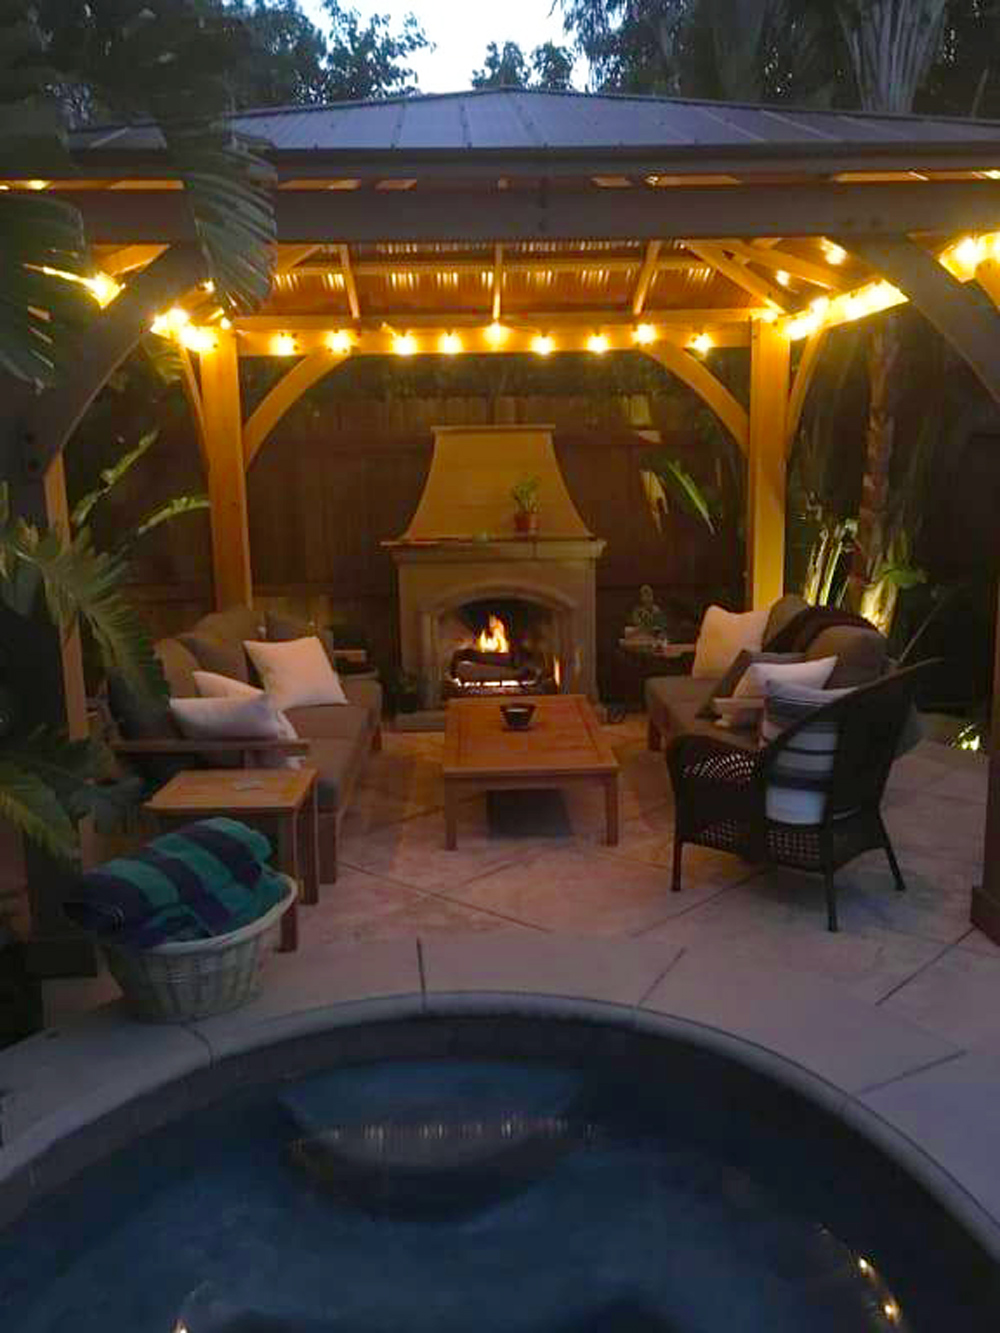 Now We Re Outside Way More 2 Outdoor Fireplaces Yardistry Structures Gazebos Pavilions And Pergolas